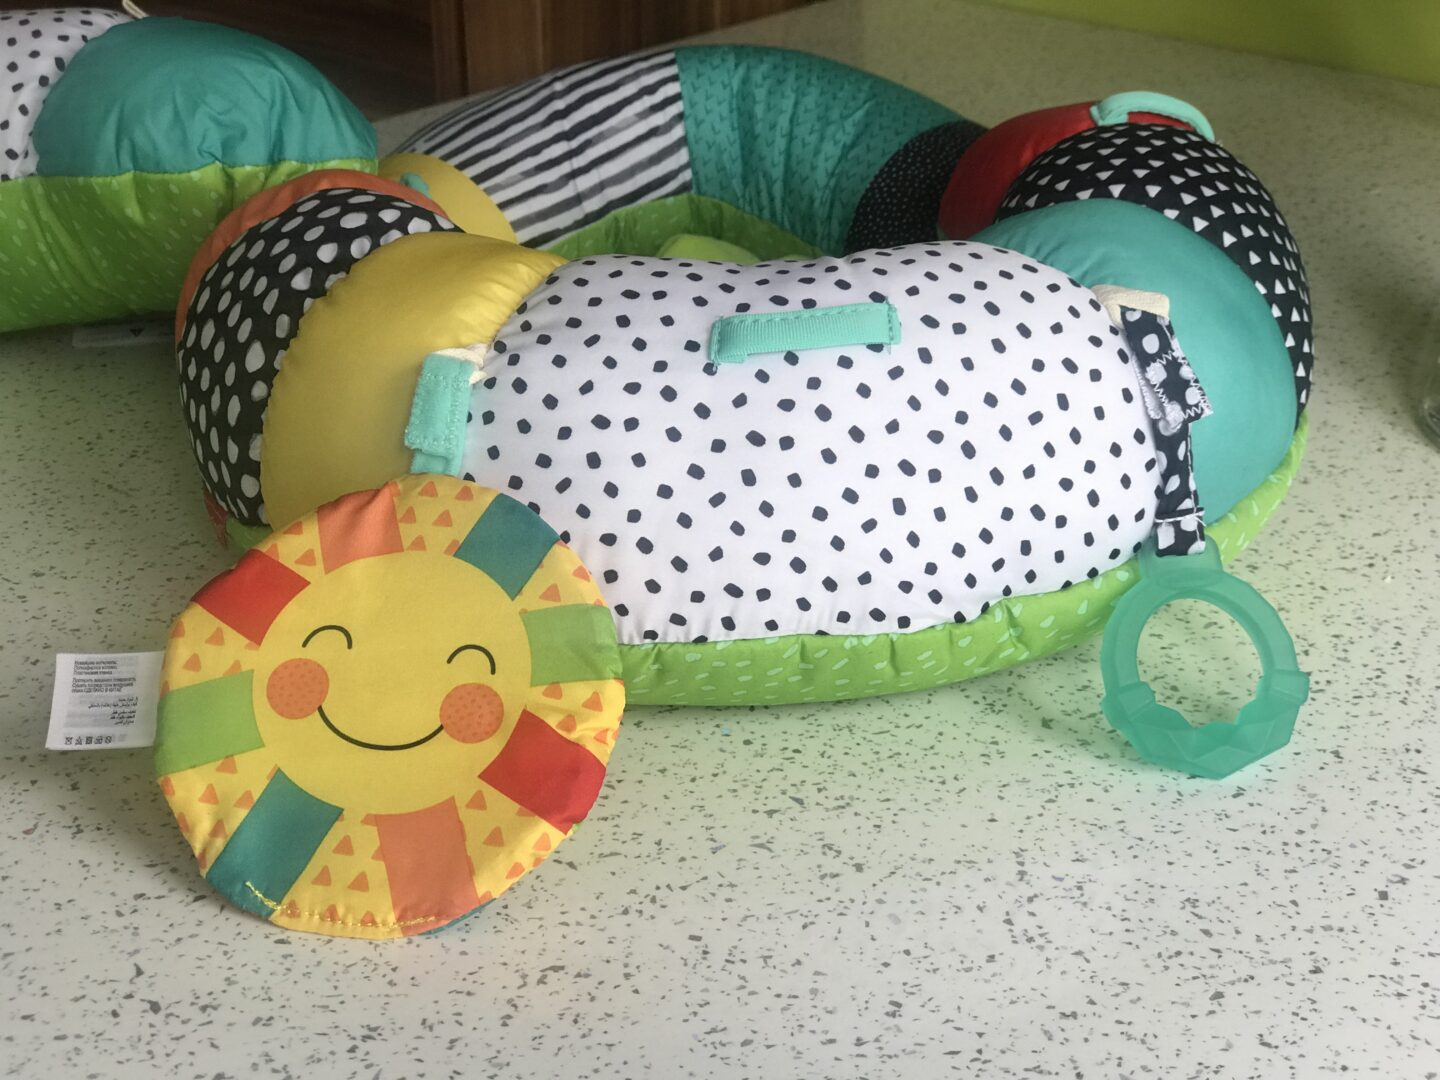 A close up of the Infantino Prop-a-Pillar tummy time support showing the crikly sun and BPA-free teether